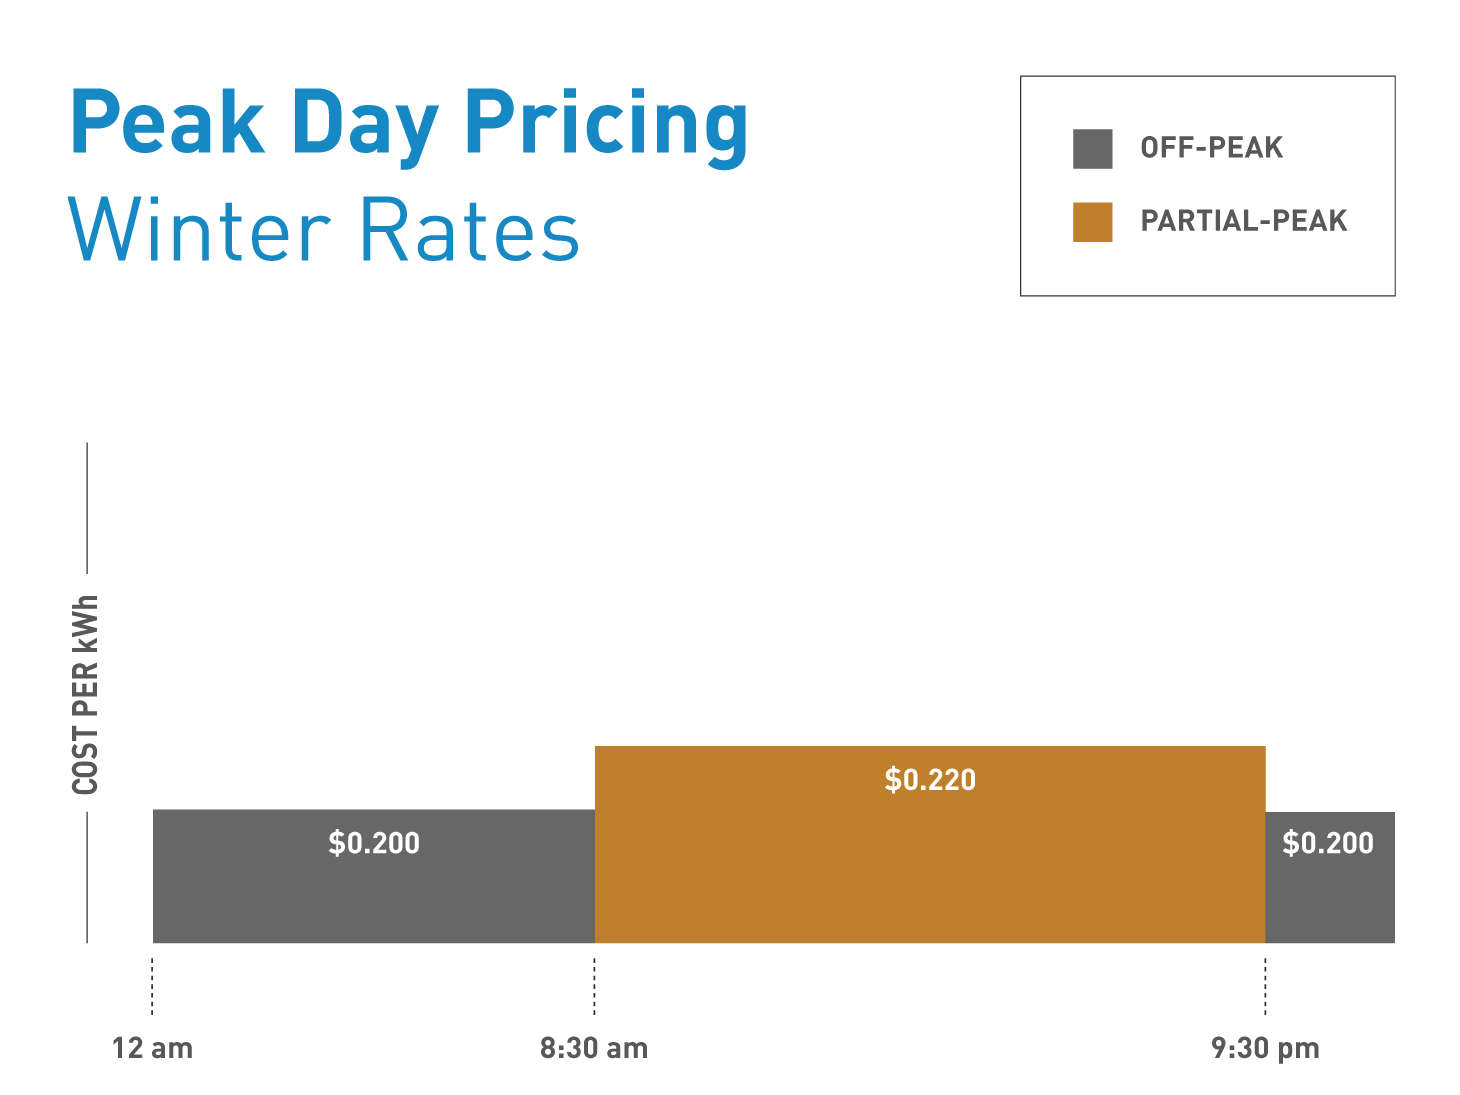 Peak Day Pricing Winter Rates